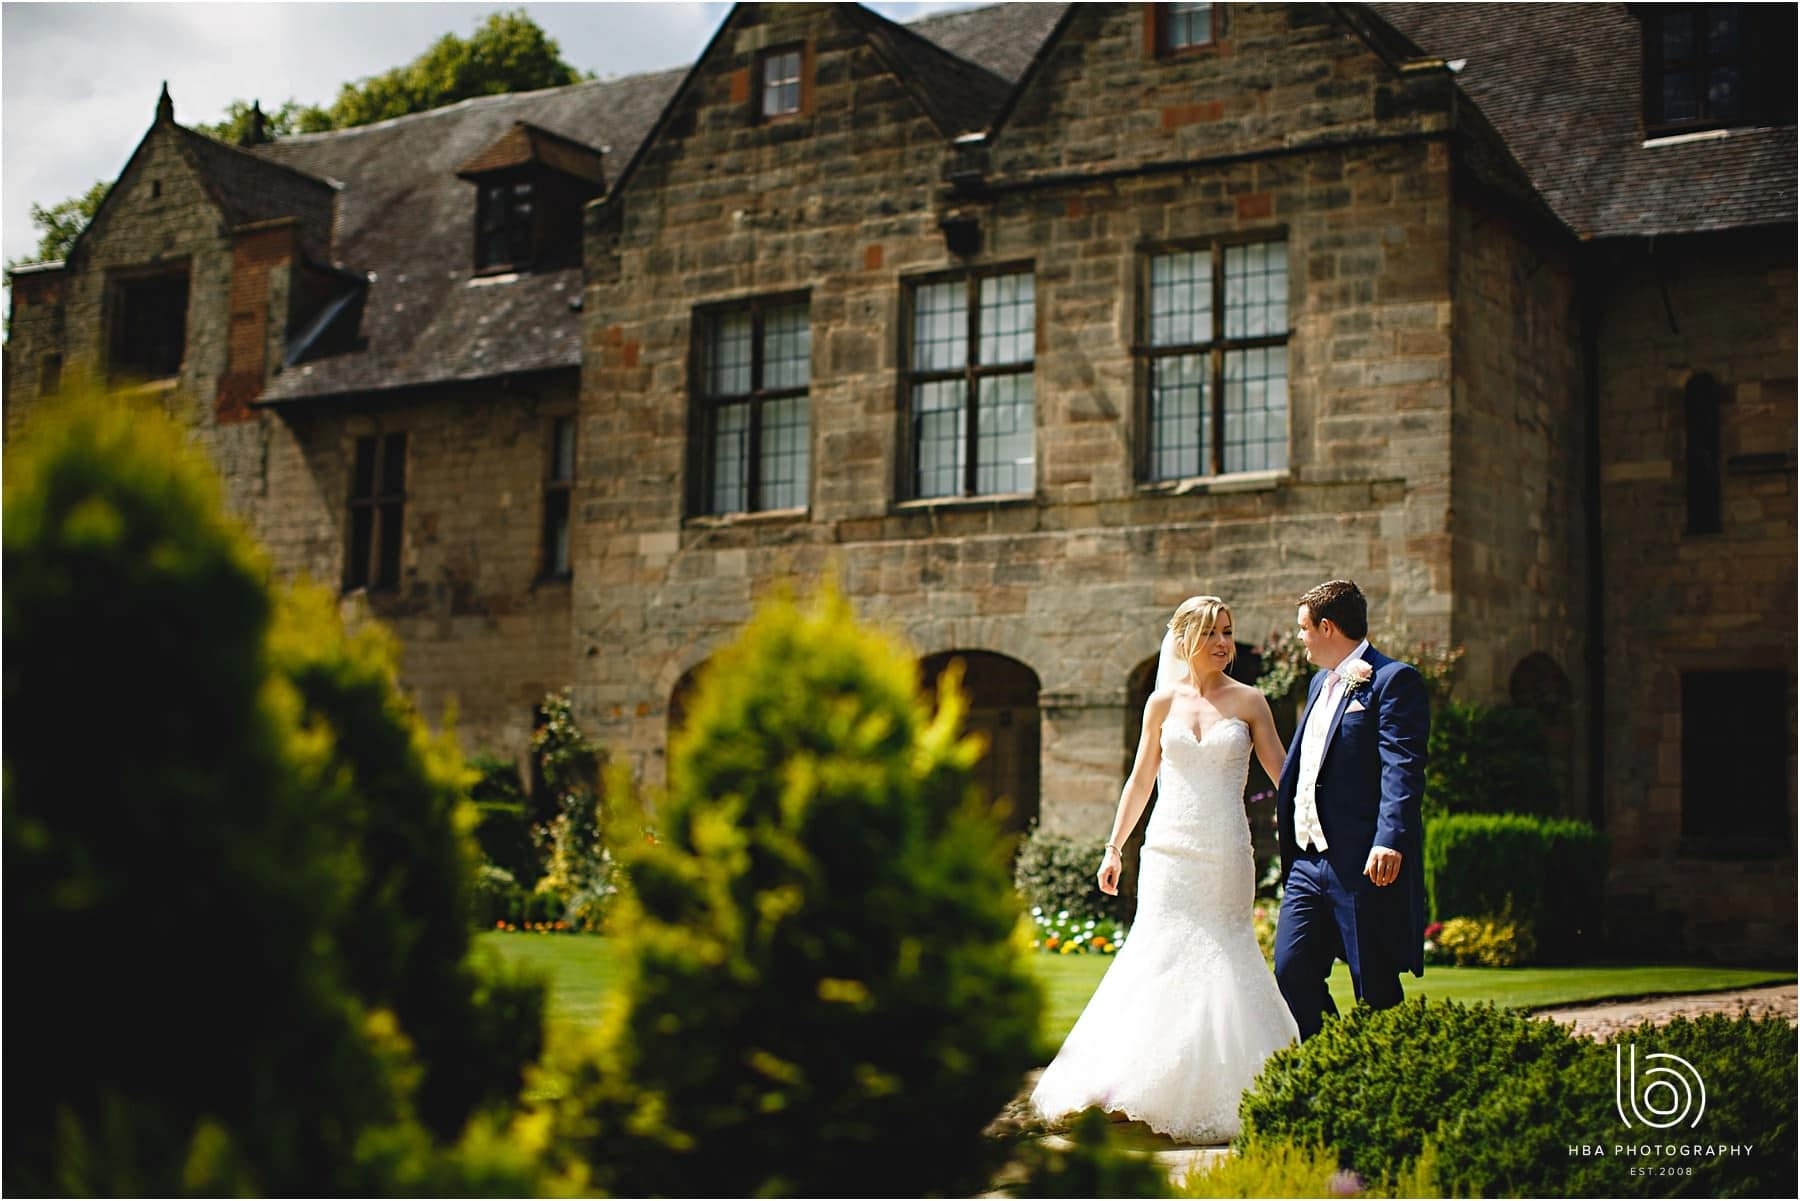 the bride & groom in the grounds of repton school